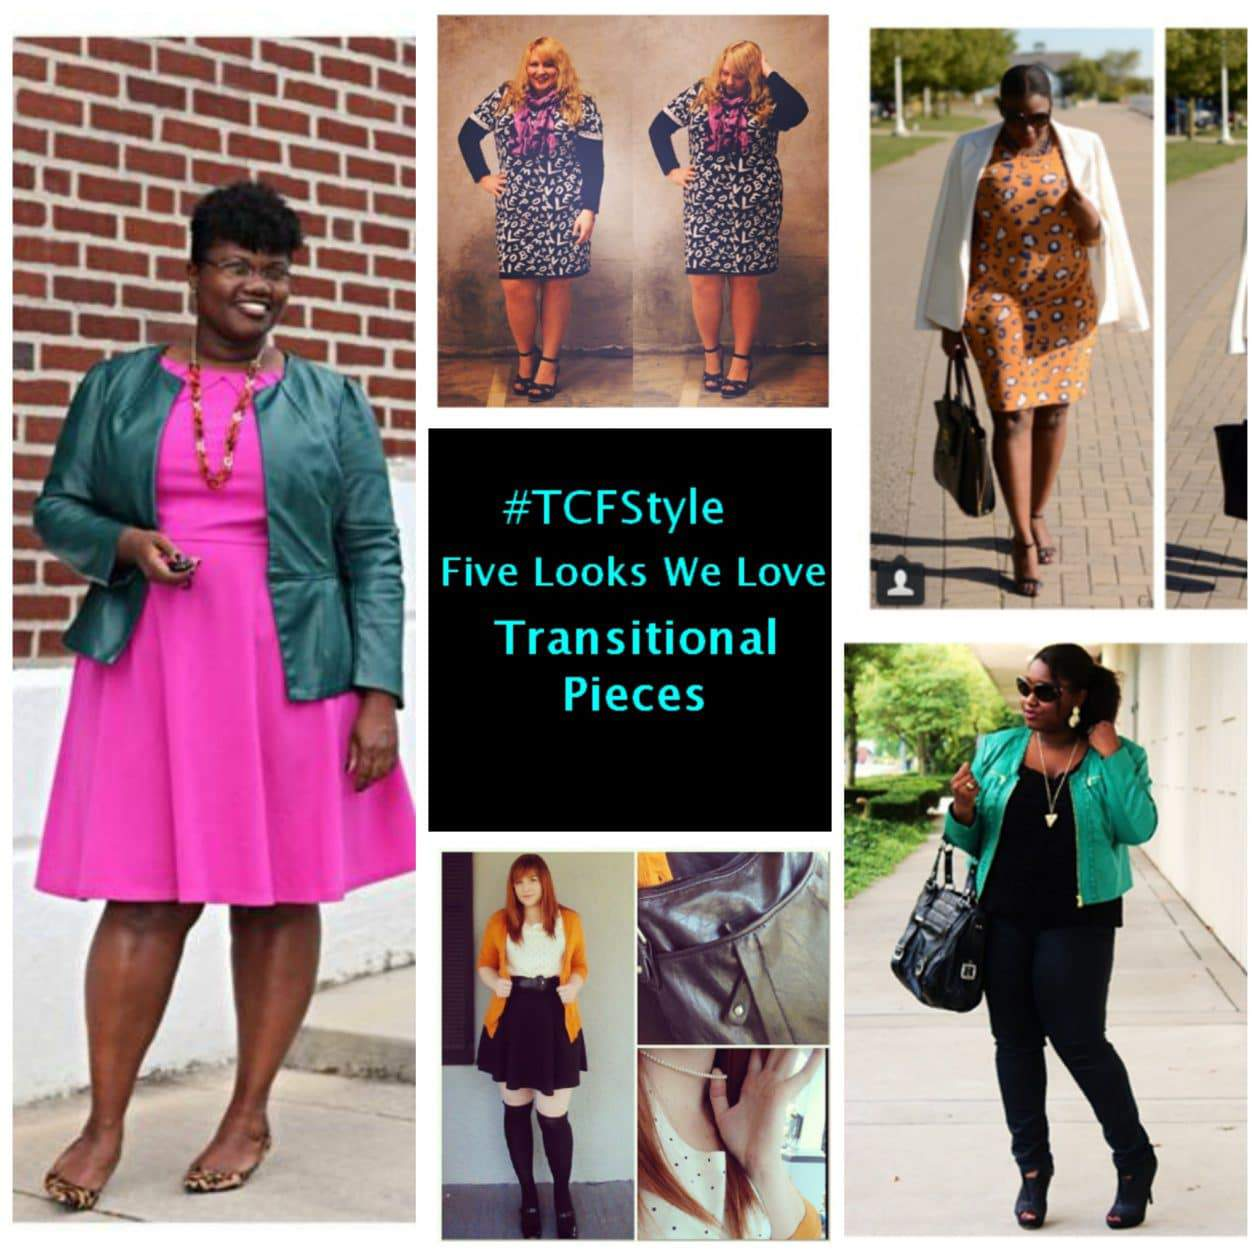 #TCFStyle Five Looks We Love: Transitional Pieces